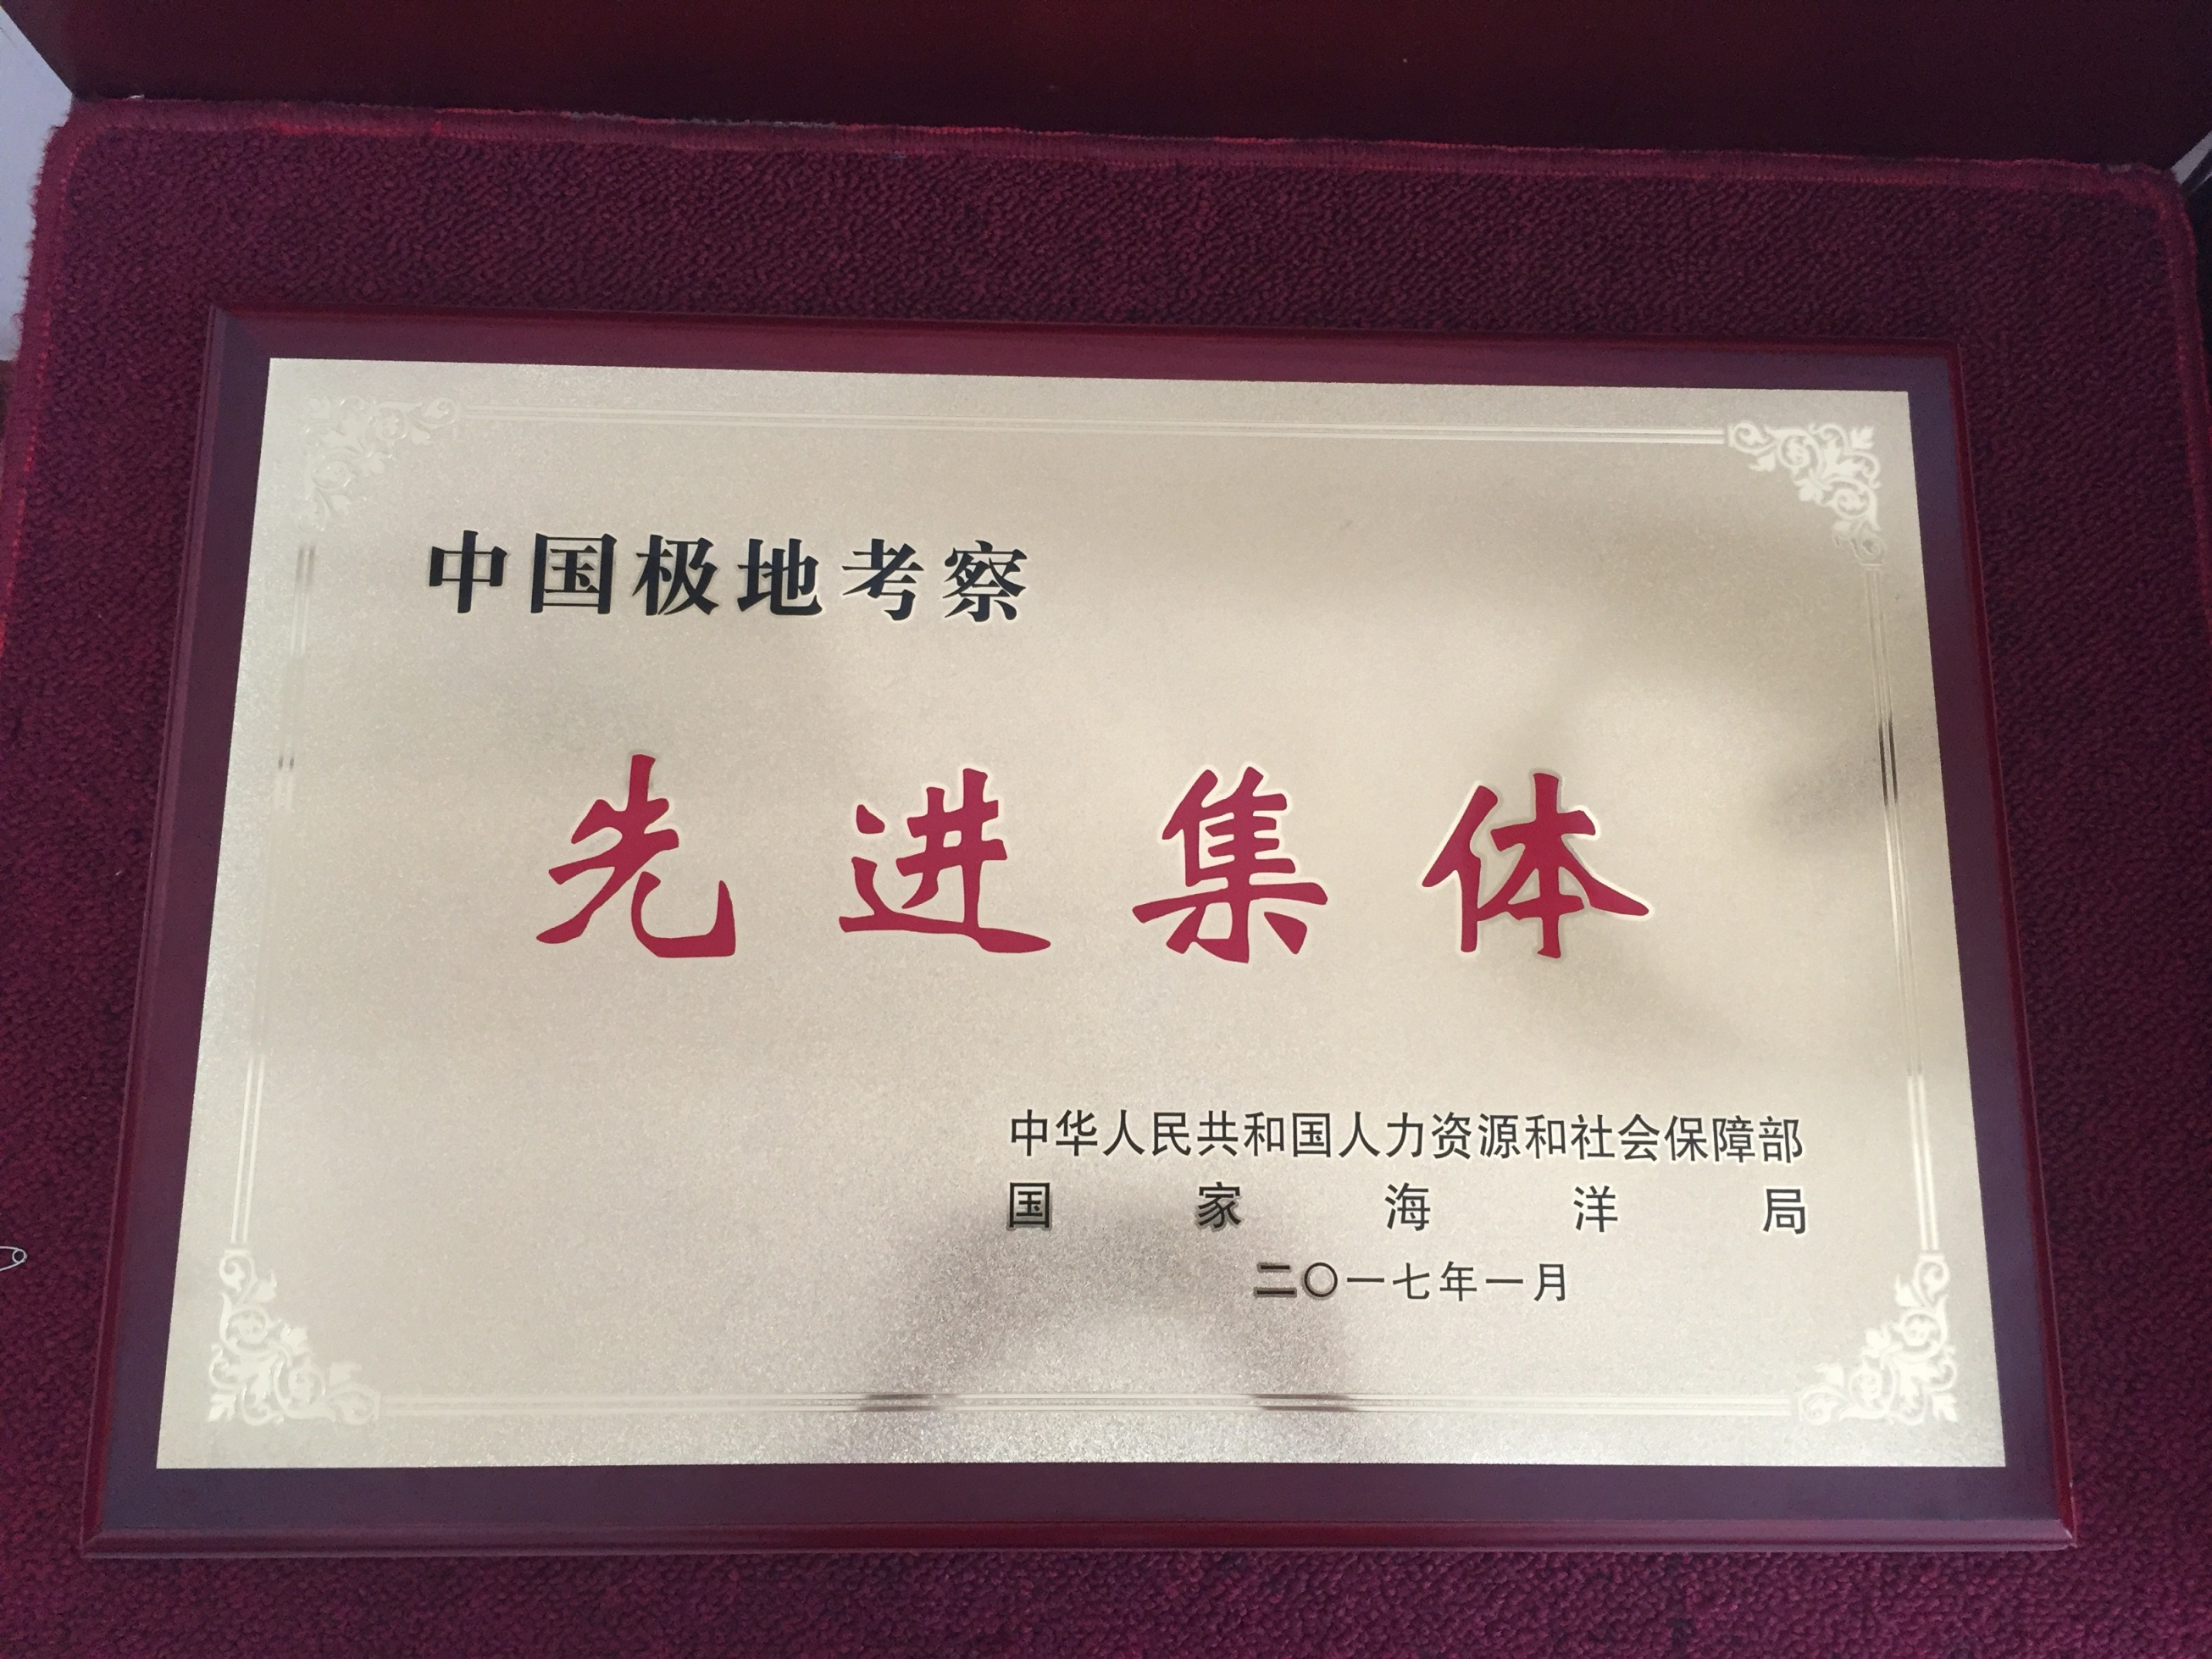 LiuGong Honored with Organizational Excellence Award for China Polar Expedition